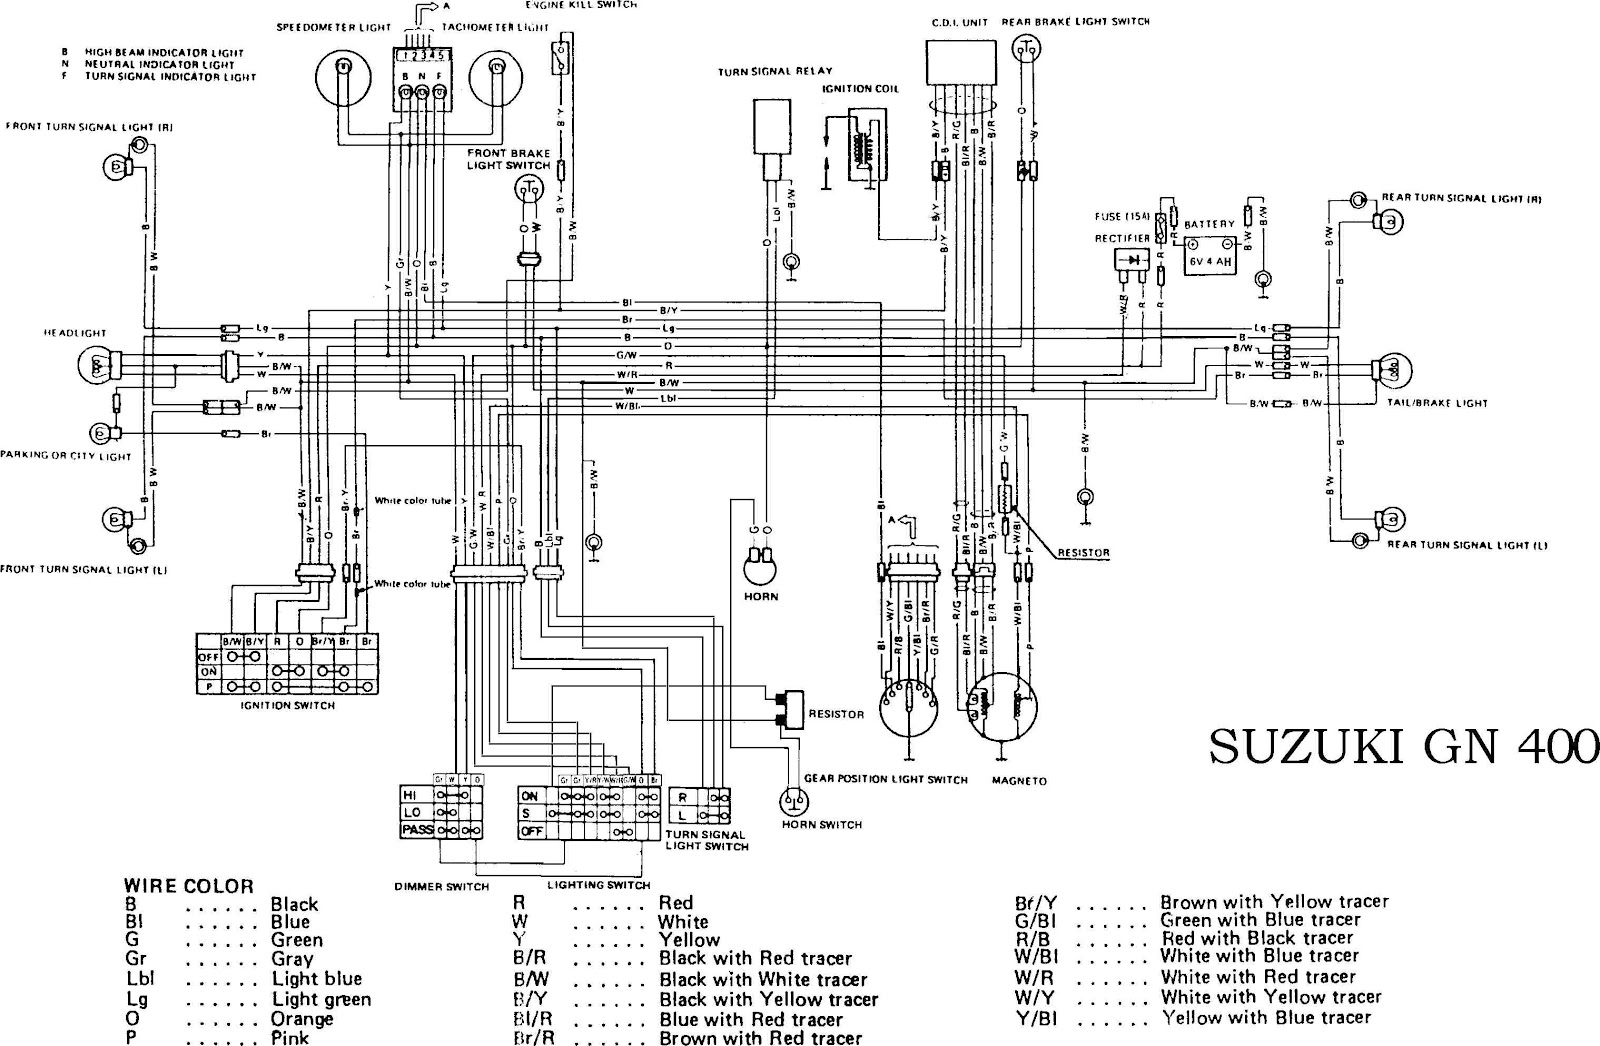 Suzuki+GN400+motorcycle+Complete+Electrical+Wiring+Diagram?resize=665%2C435 suzuki bandit wiring diagram the best wiring diagram 2017  at gsmx.co